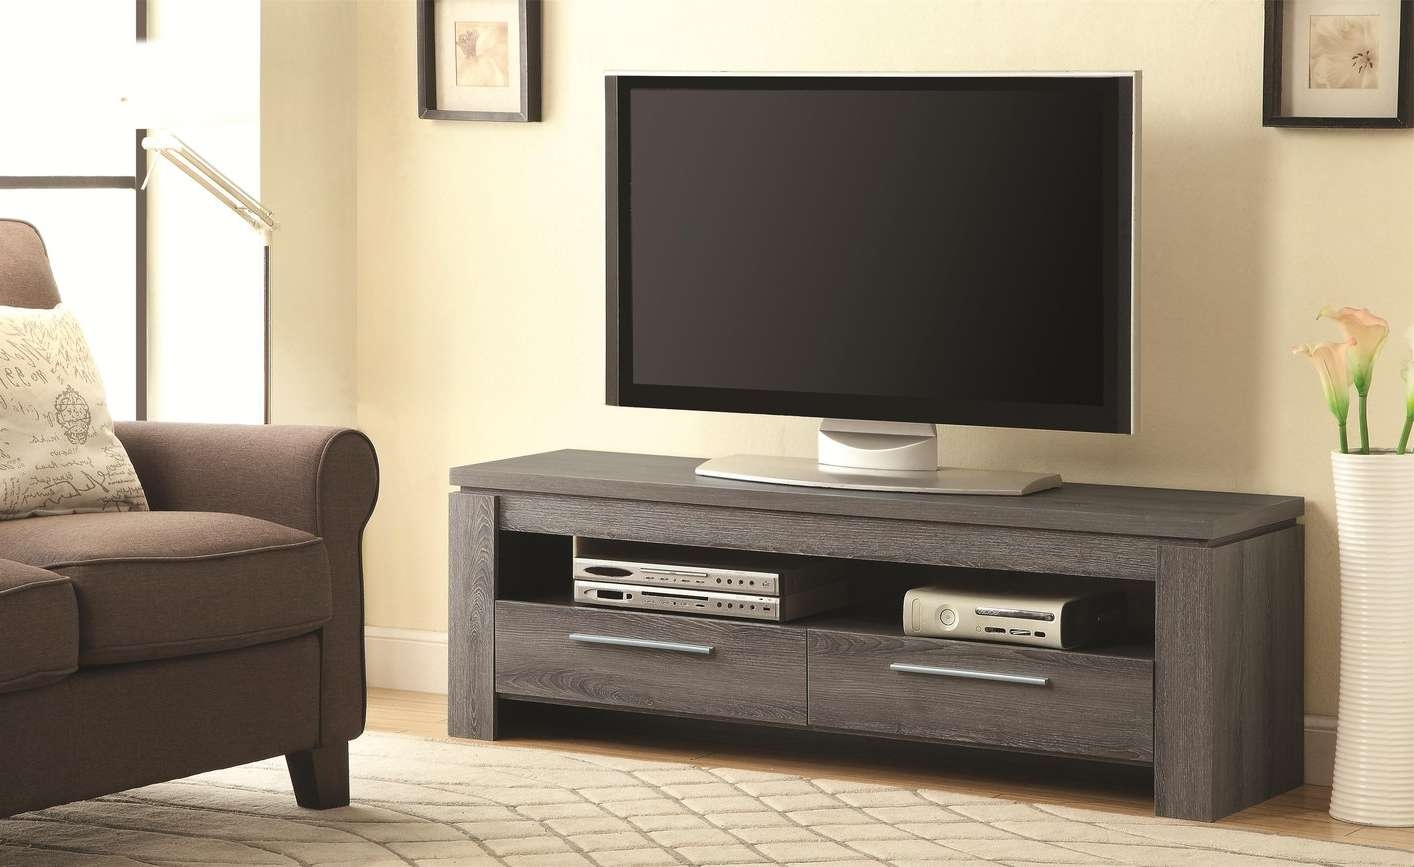 Grey Wood Tv Stand – Steal A Sofa Furniture Outlet Los Angeles Ca Pertaining To Grey Wood Tv Stands (Gallery 2 of 15)